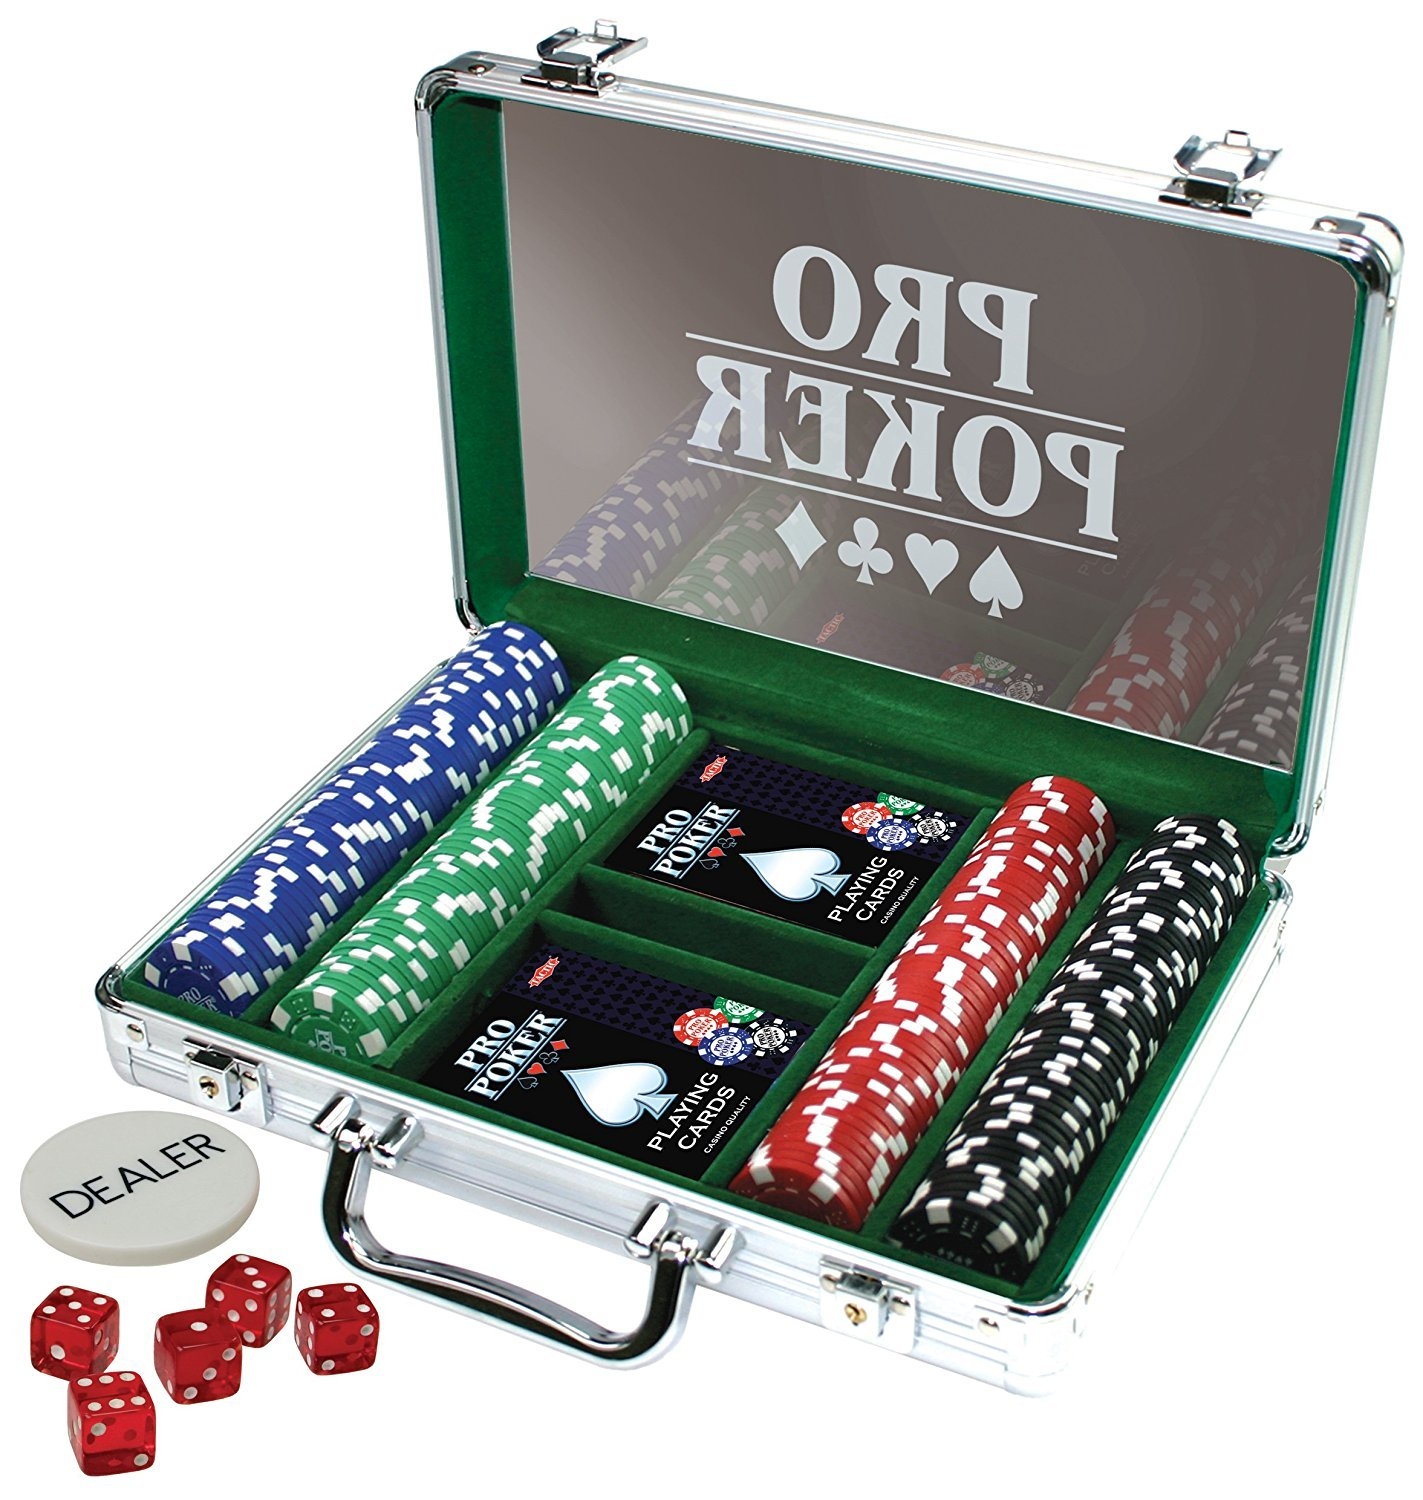 Tactic - Pro Poker Case 200 chips (03090)